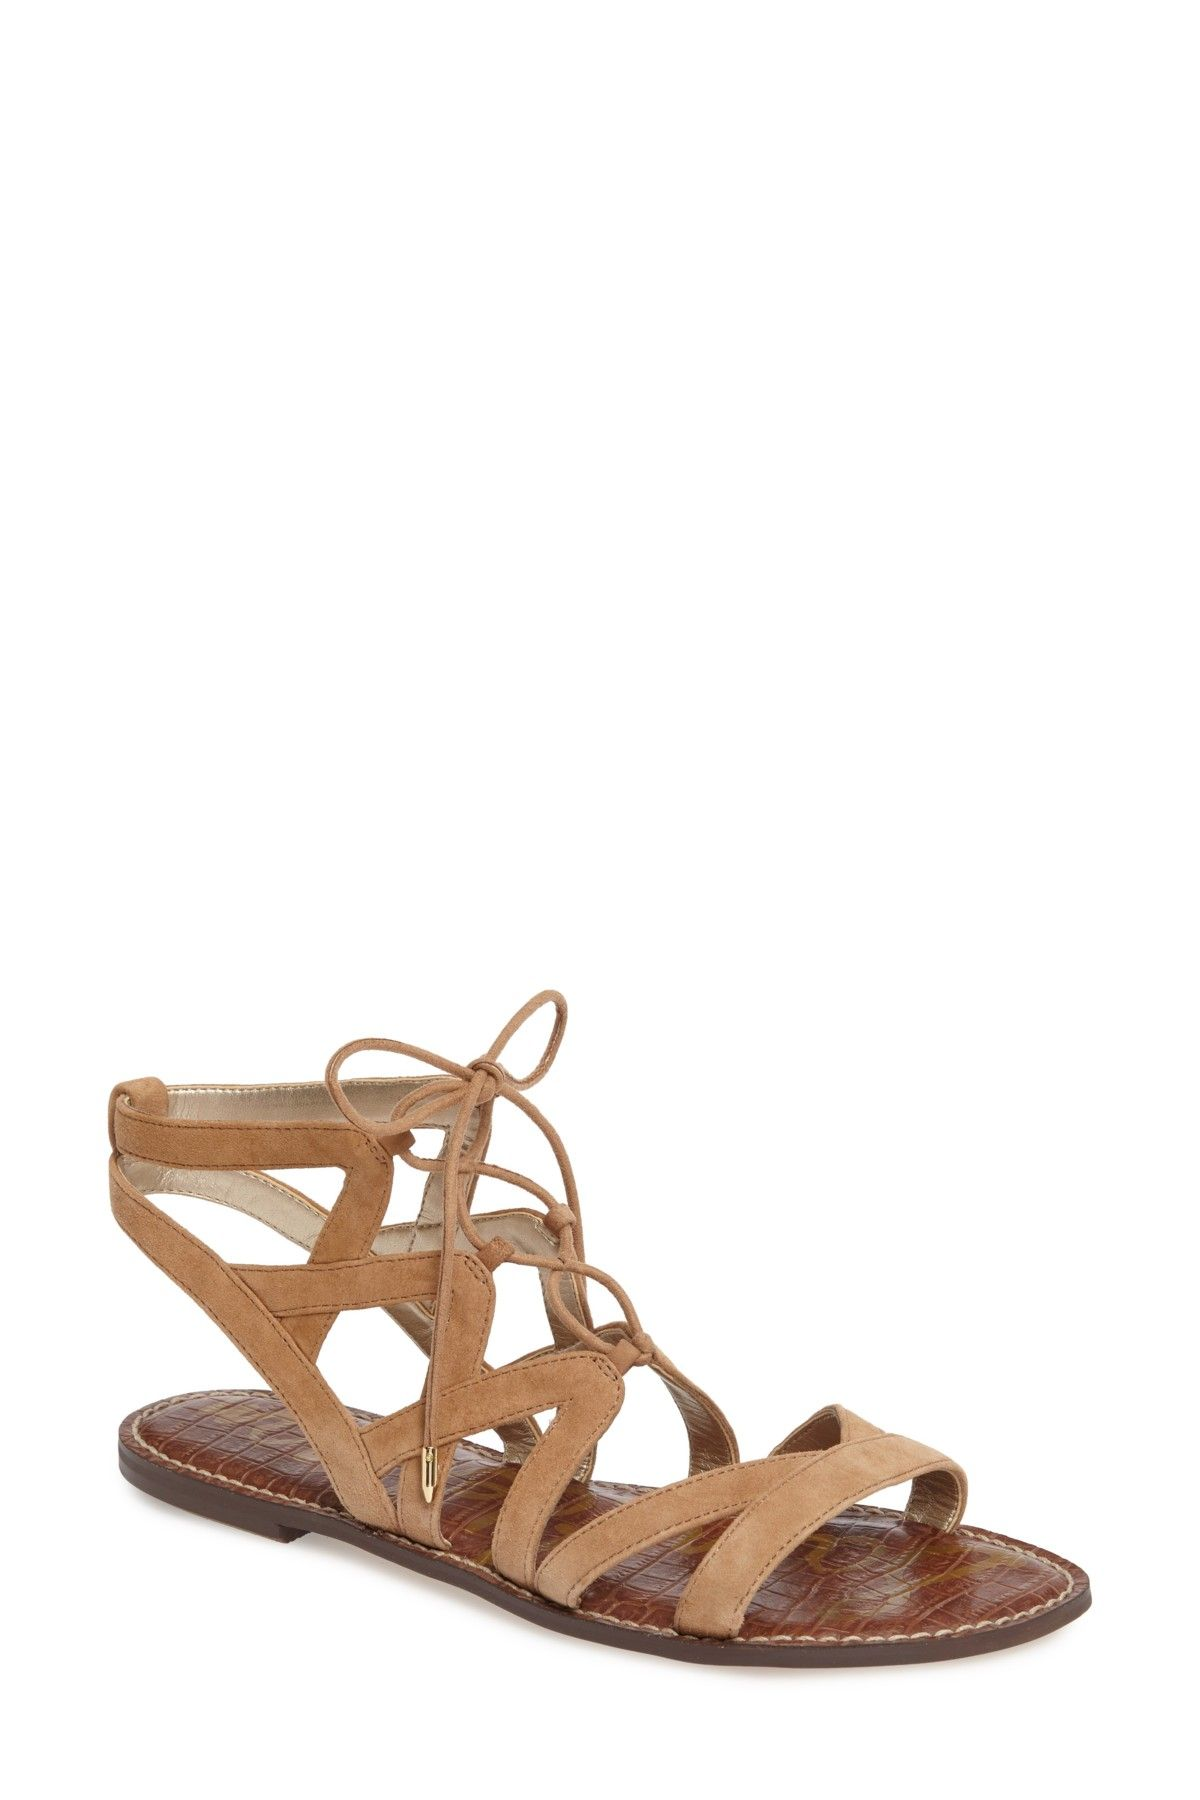 7b8b52f14d89 Gemma Lace-Up Sandal - Wide Width Available by Sam Edelman on   nordstrom rack